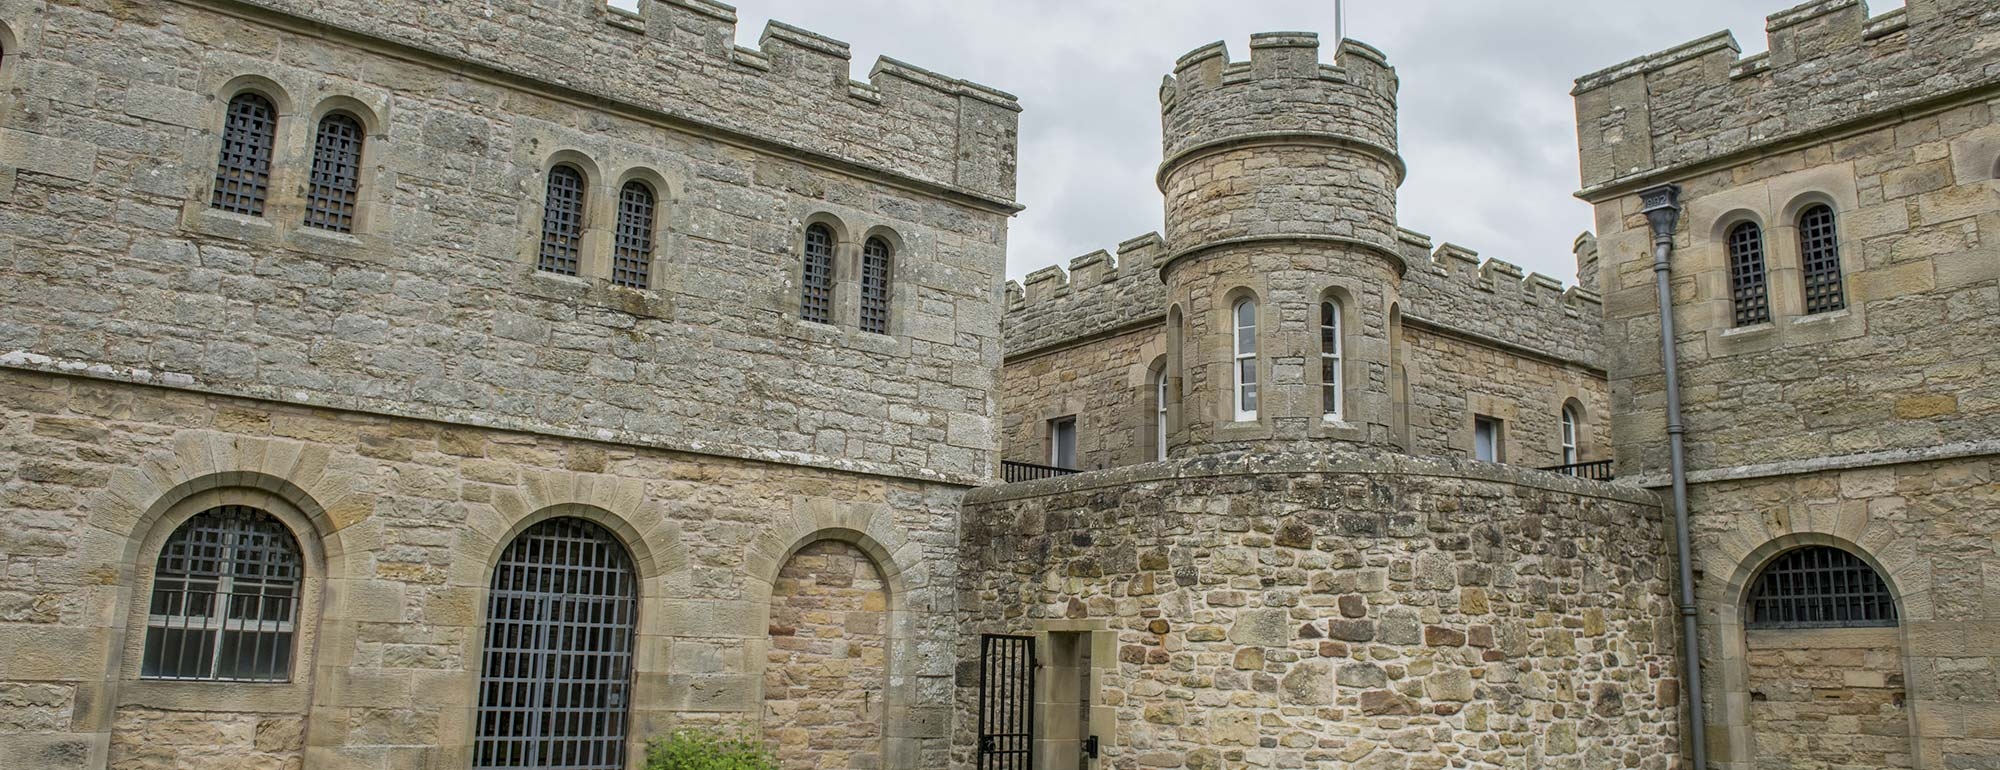 culture-museums-Jedburgh-Castle-Jail